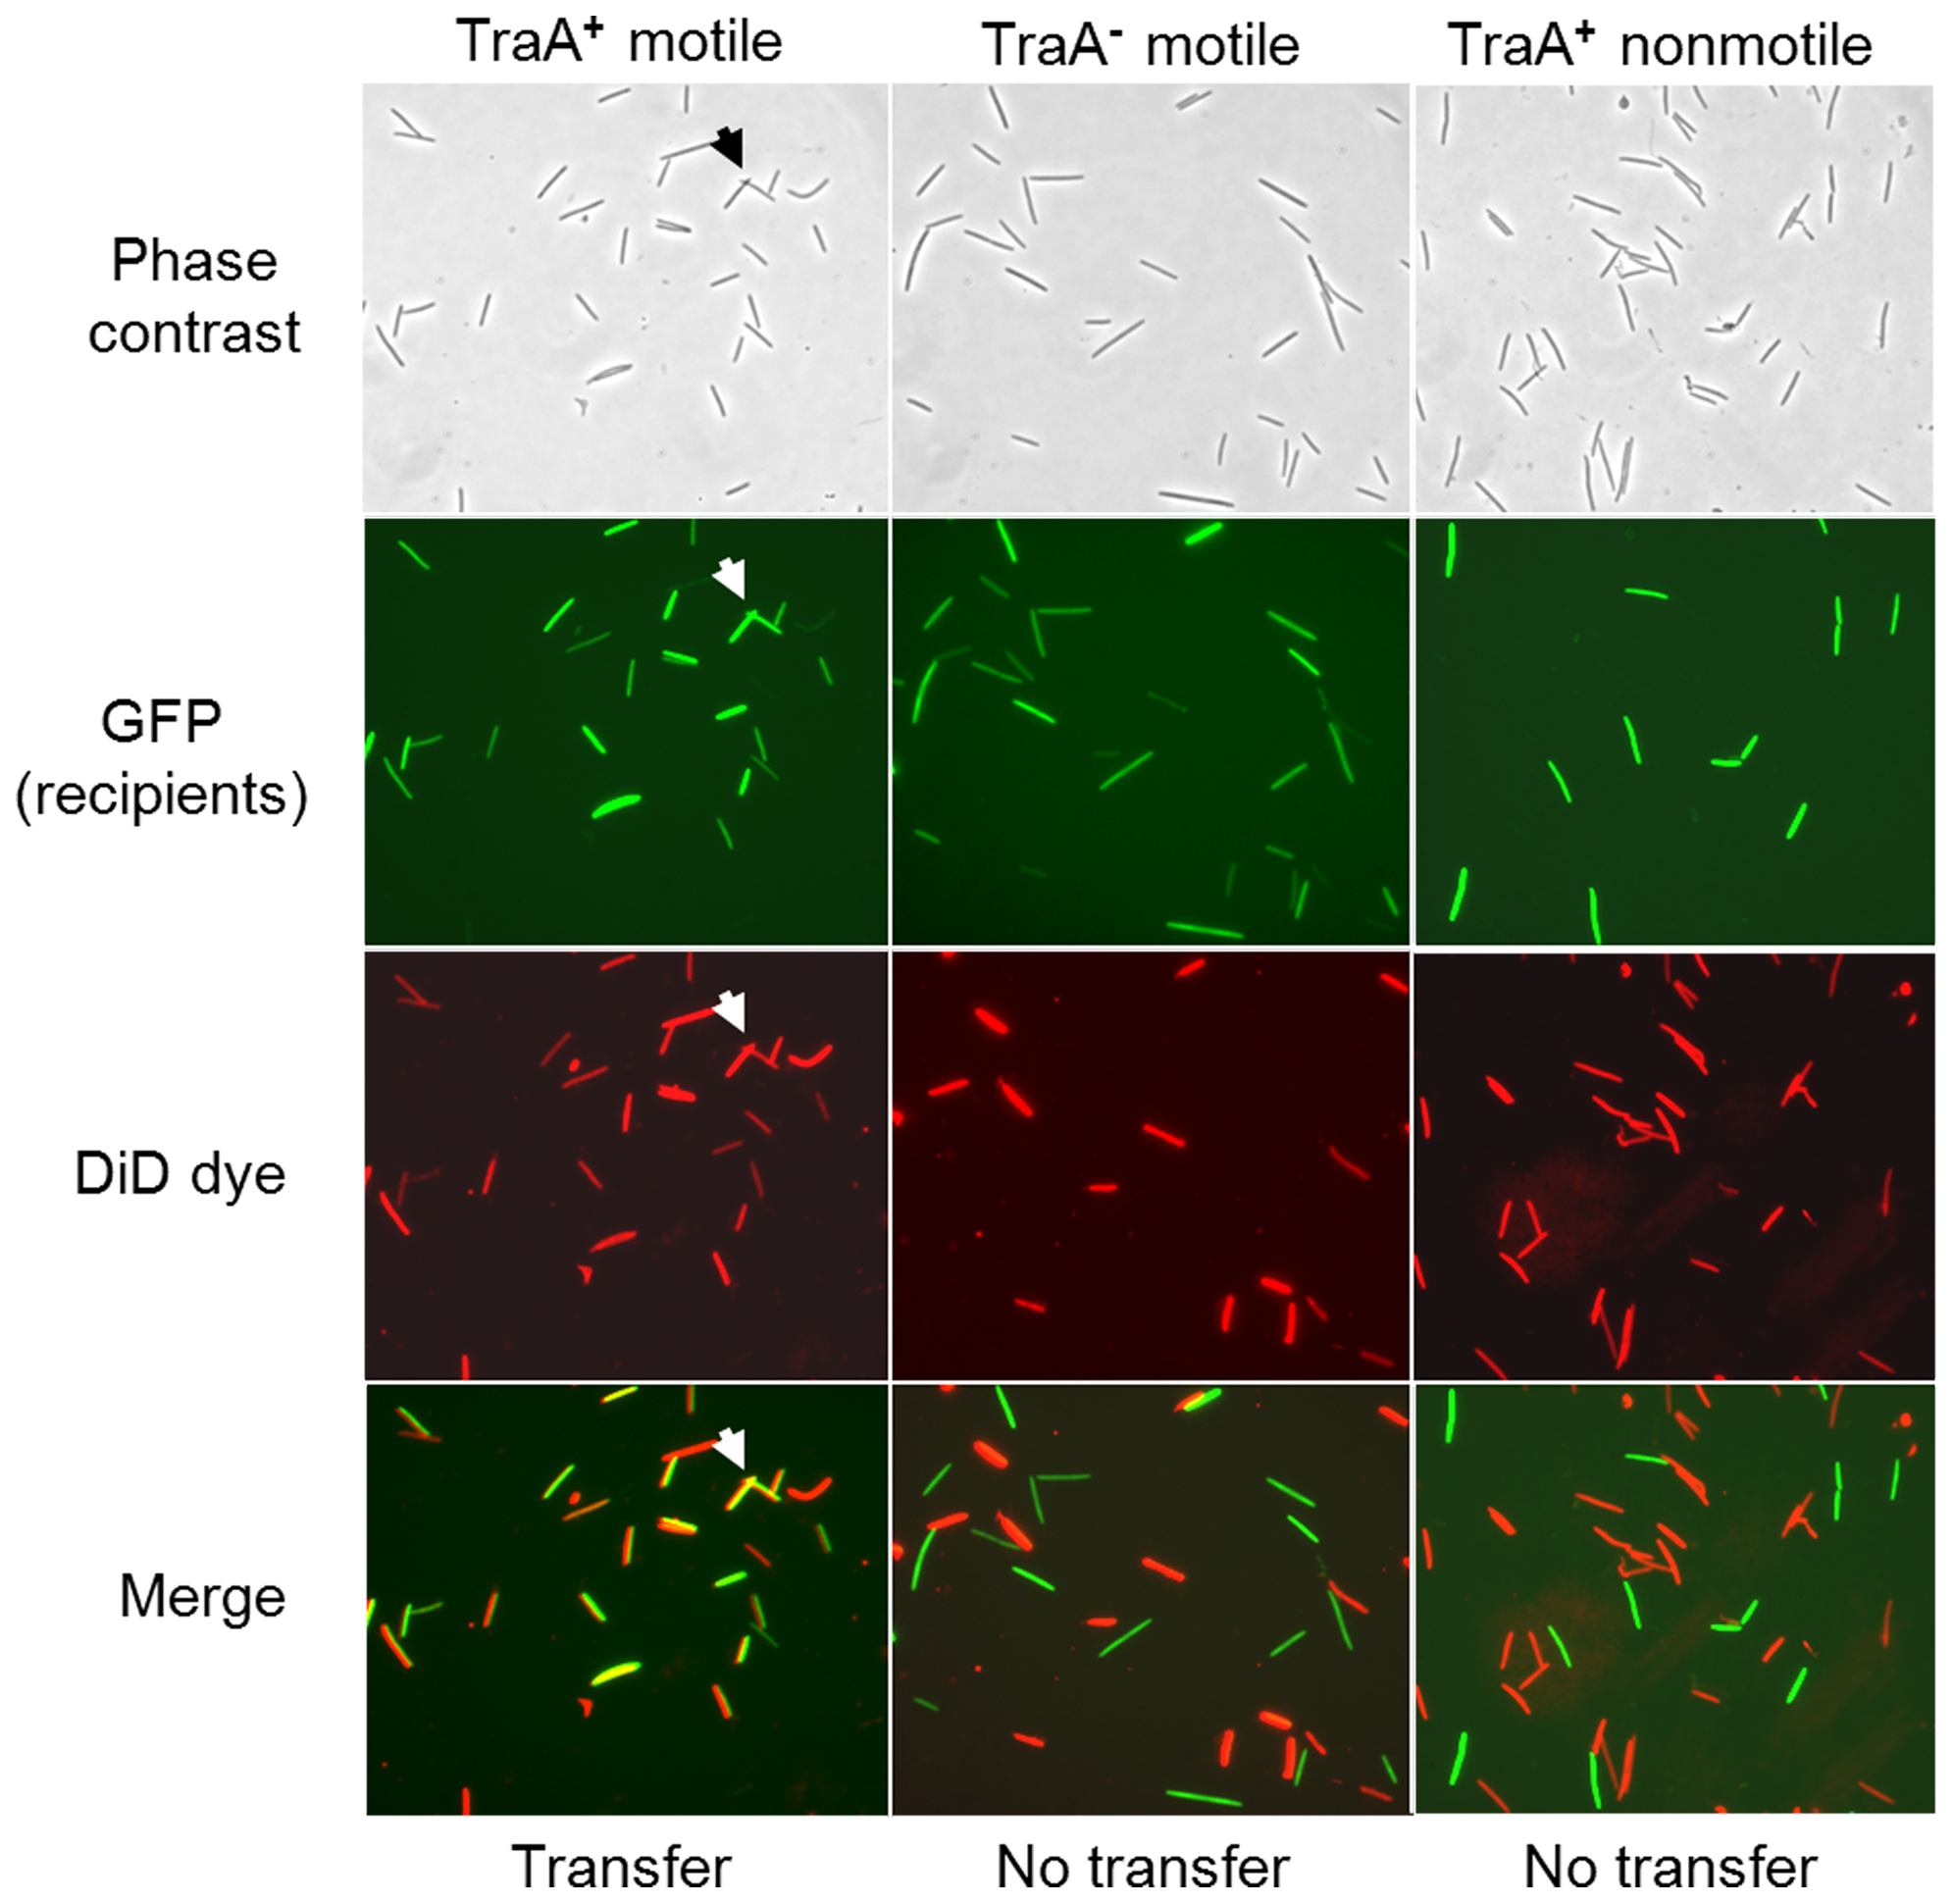 Lipophilic fluorescent dye (DiD) transfer depends on TraA and cell motility.